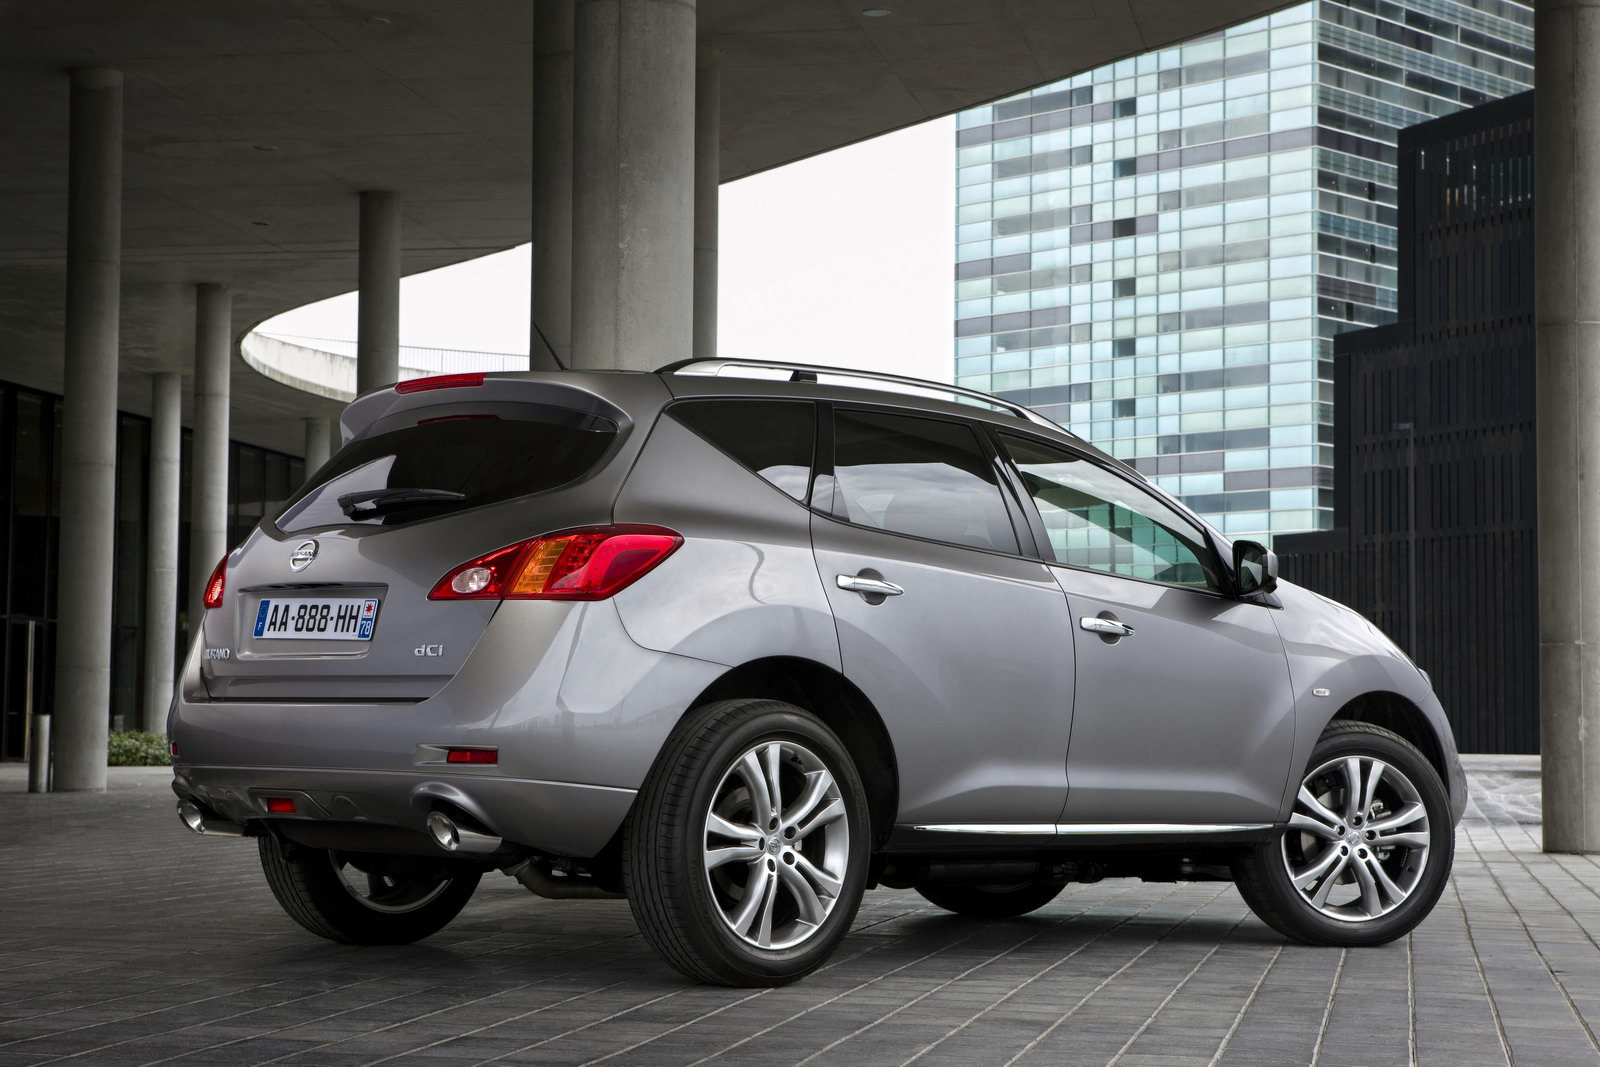 2011 nissan murano gets revised front styling due to new diesel